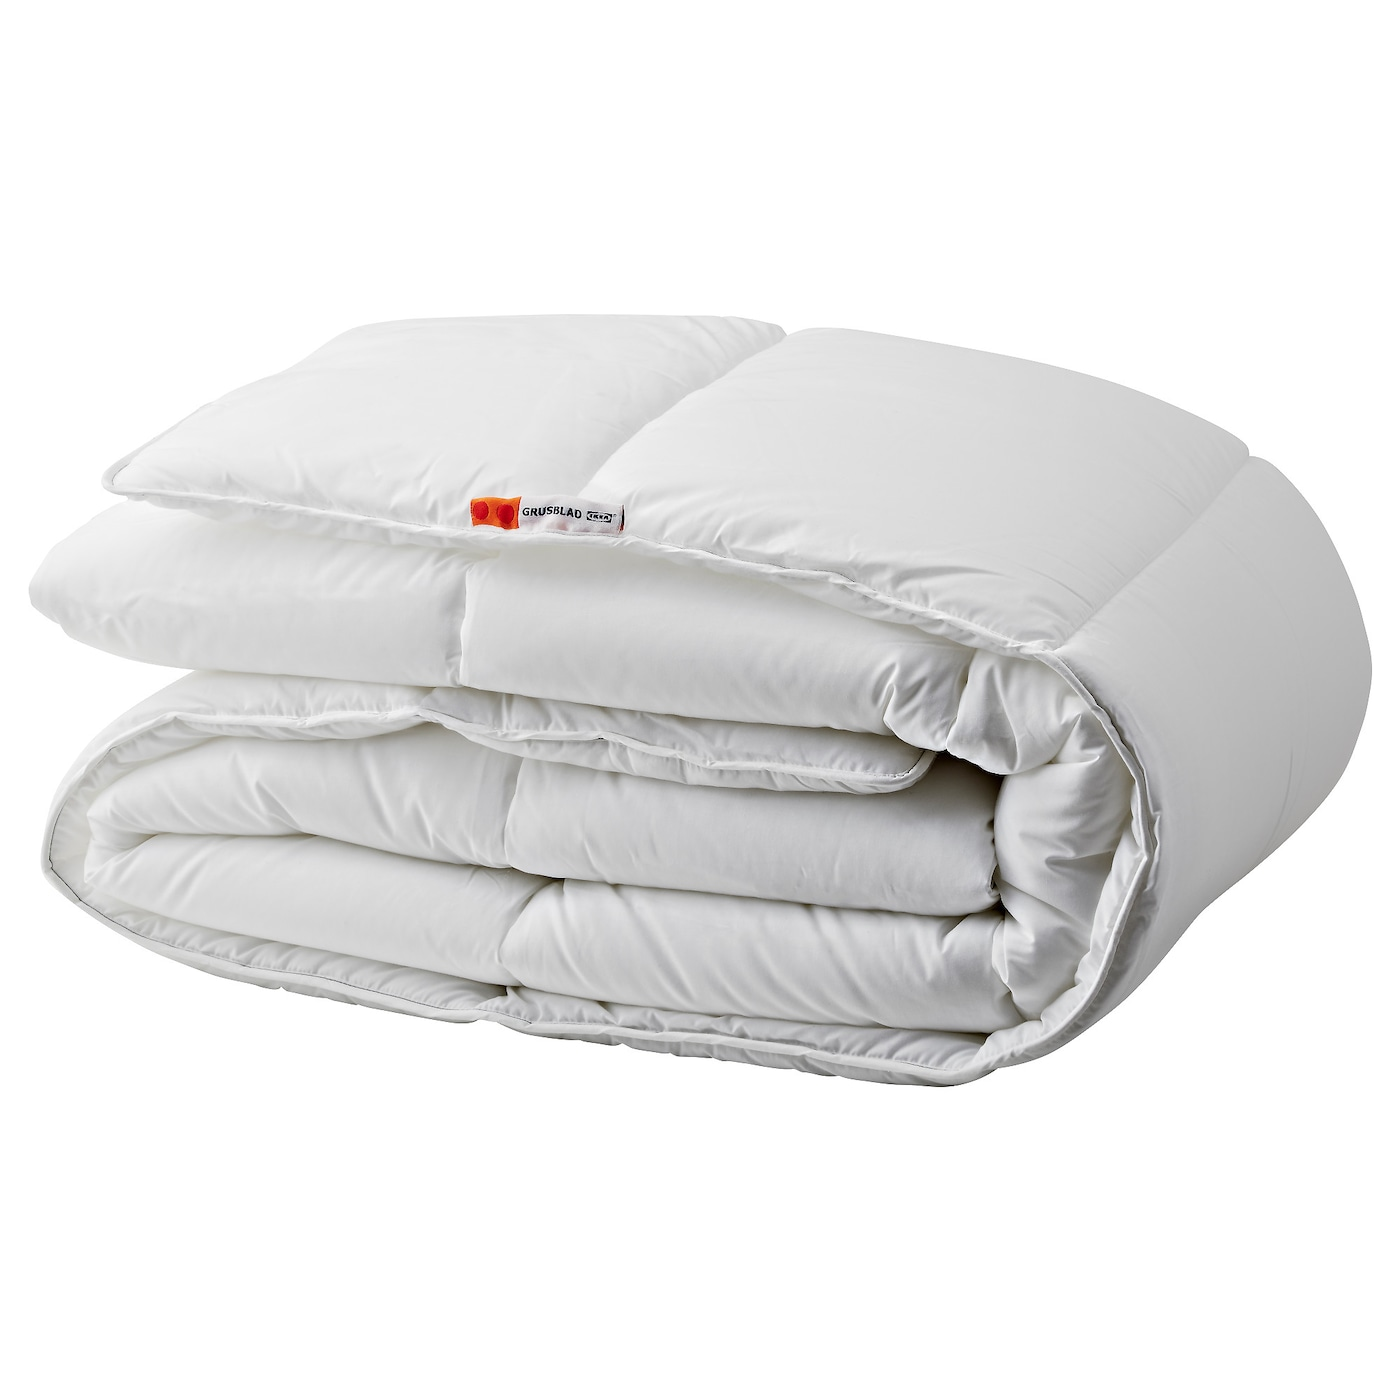 IKEA GRUSBLAD duvet, 12 TOG A good choice if you need extra warmth while sleeping.